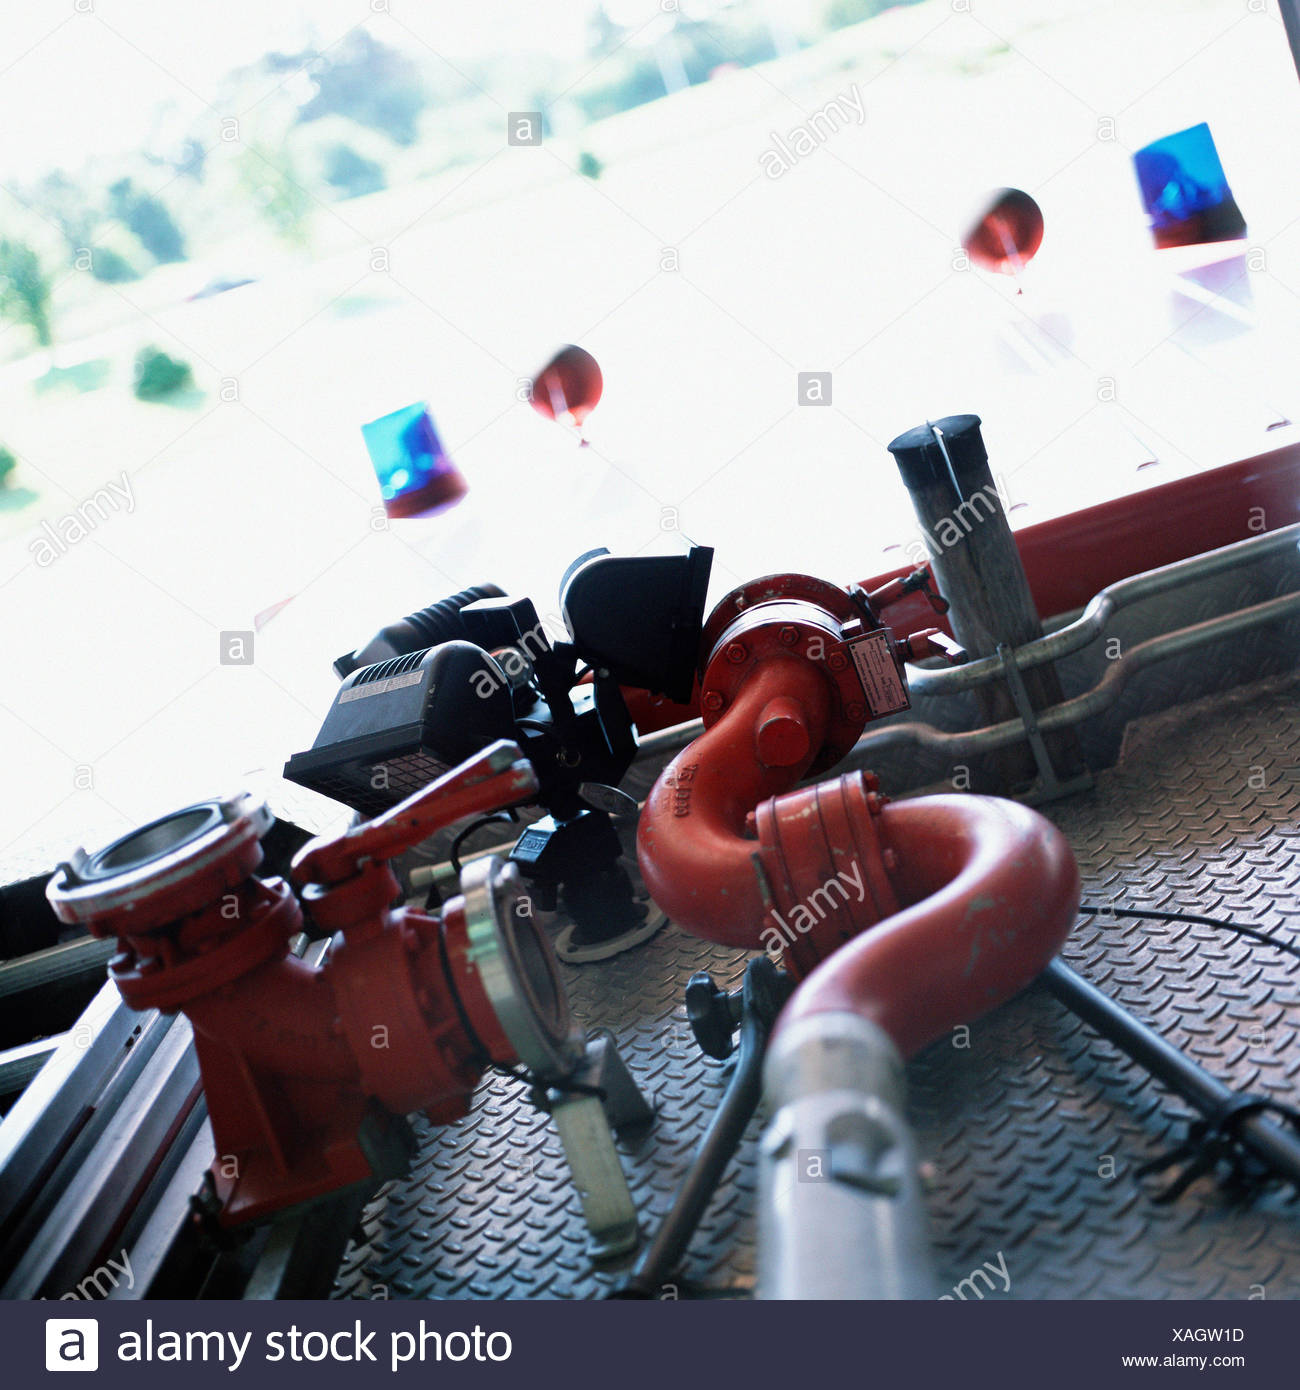 Hoses on fire-engine - Stock Image